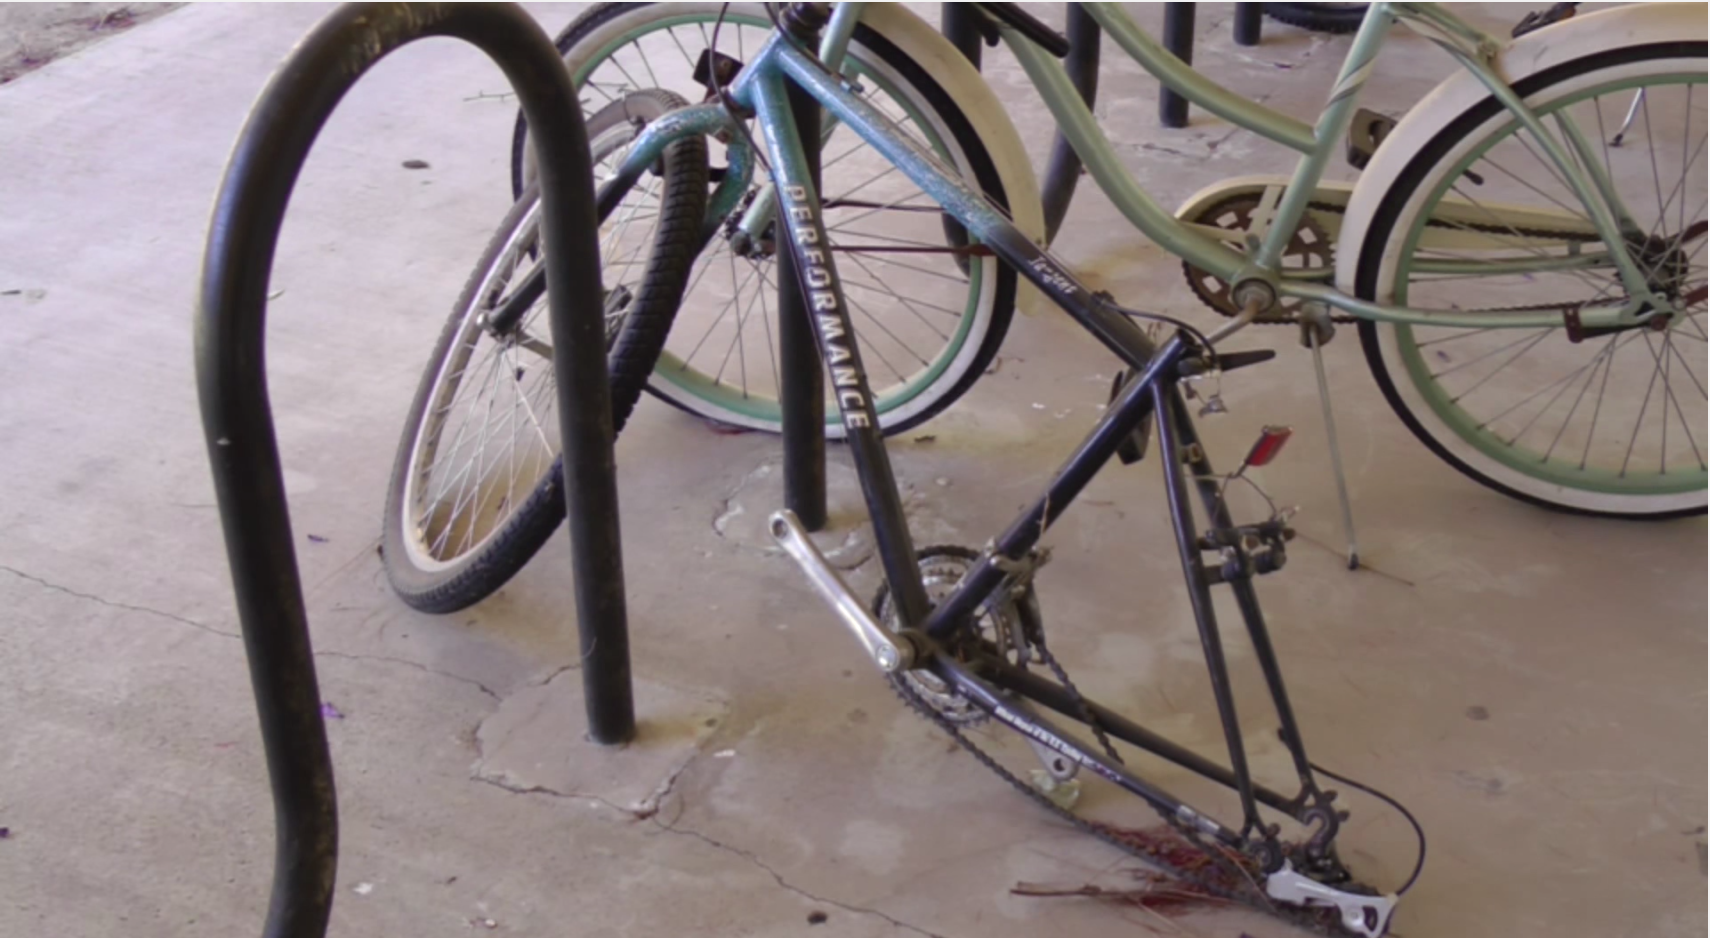 Several leftover, dismantled bicycles like this one clutter CSUN campus bike racks. Over 100 bicycle thefts were reported from Apr. 1, 2014 to the following year. Photo credit: Justen Gutierrez